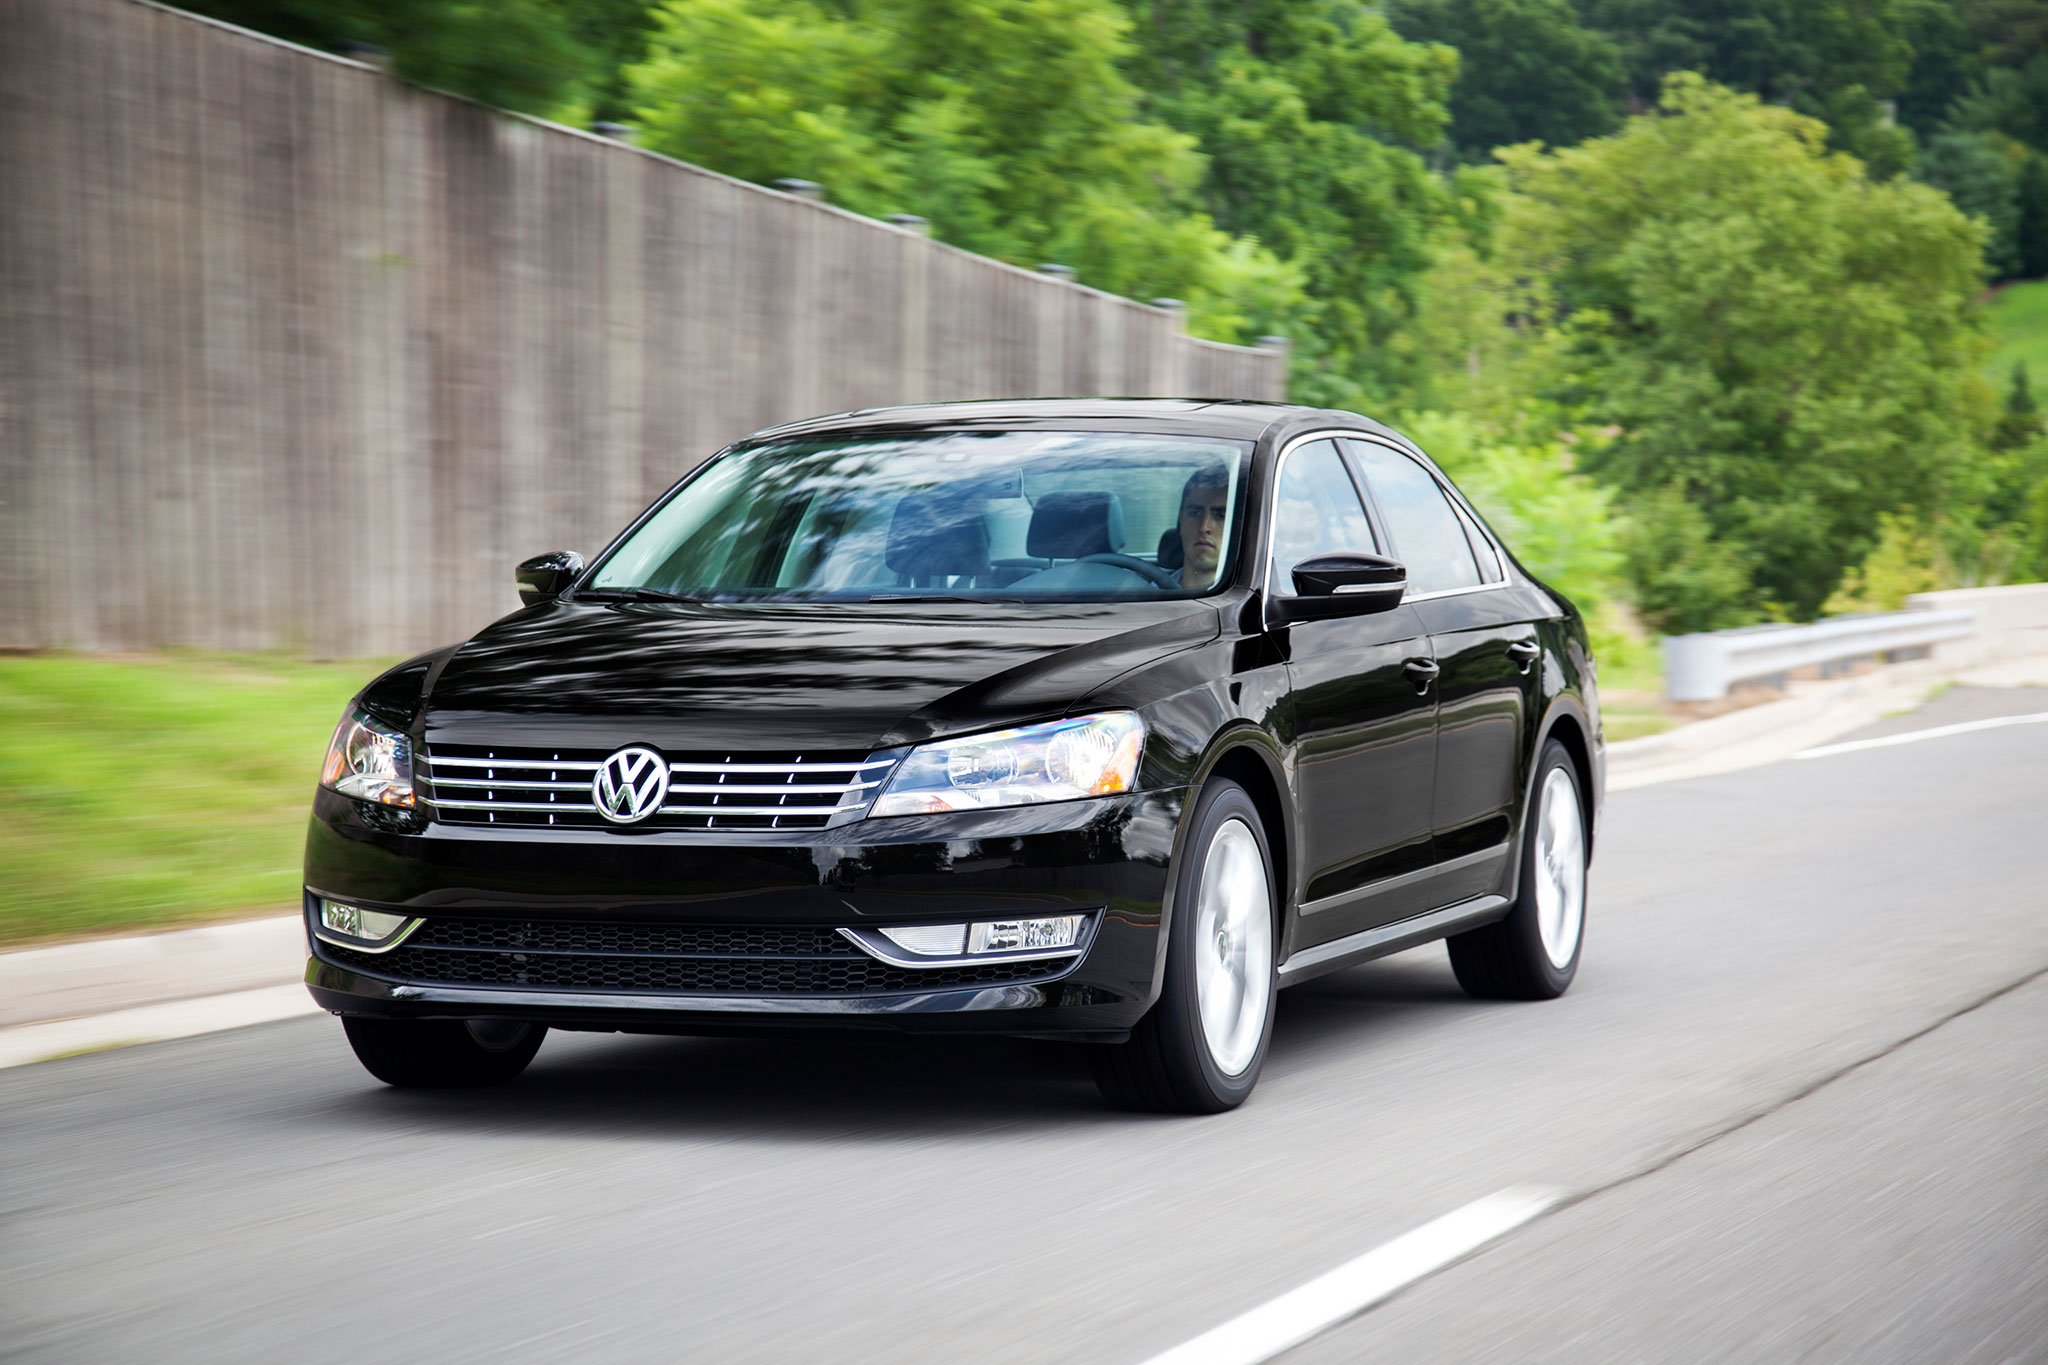 Volkswagen Passat 1.8 2014 photo - 9